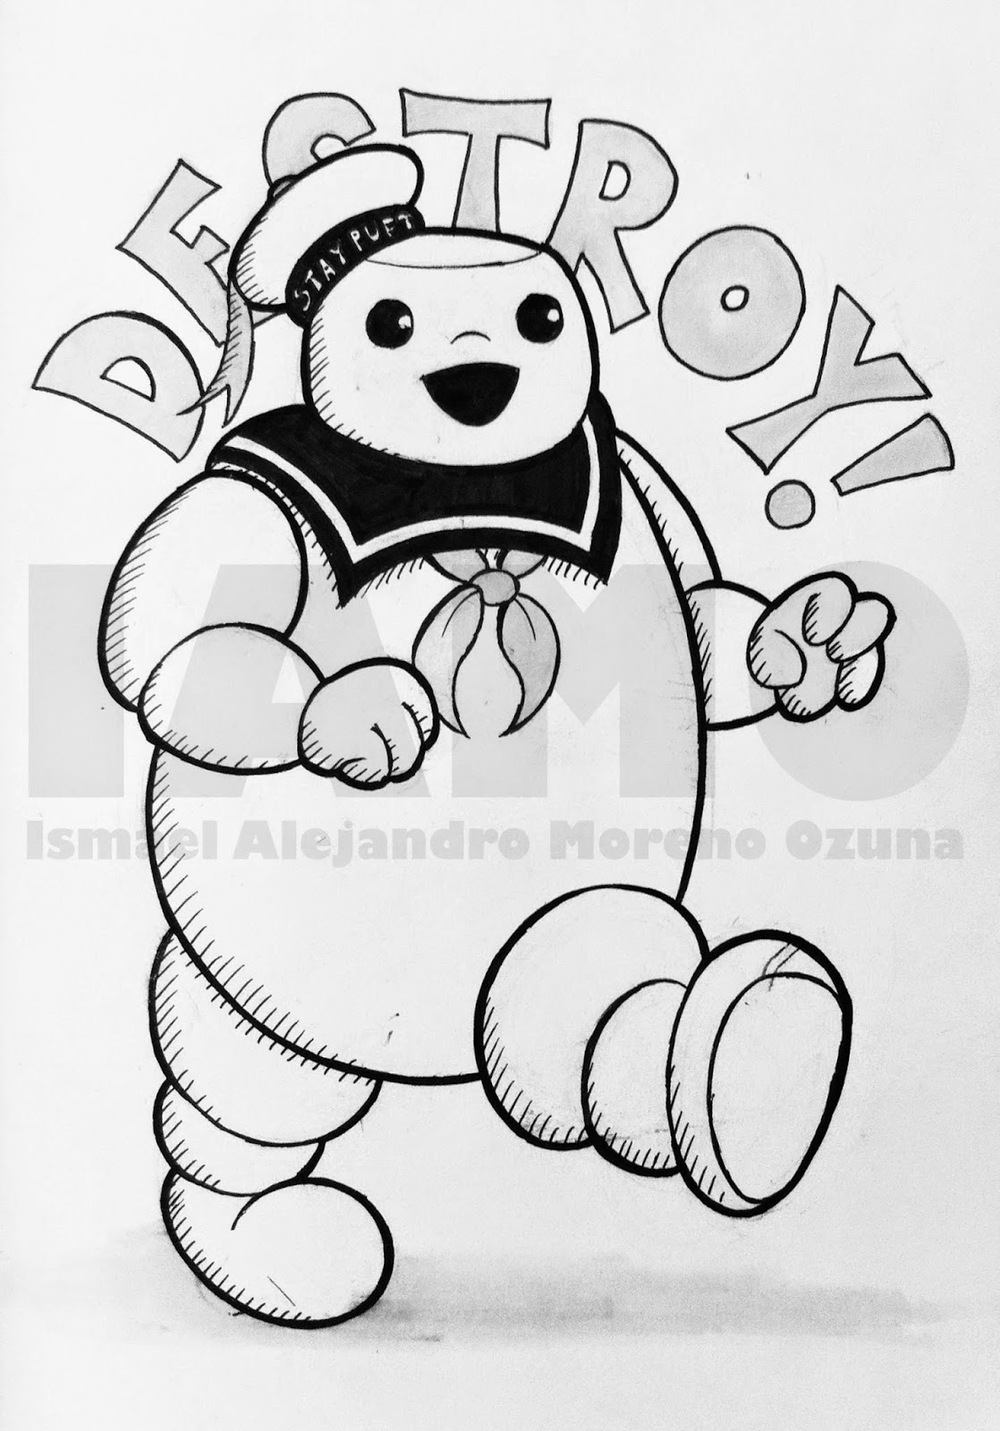 IAMO Stay Puft Marshmallow Man Ghostbusters Sketch